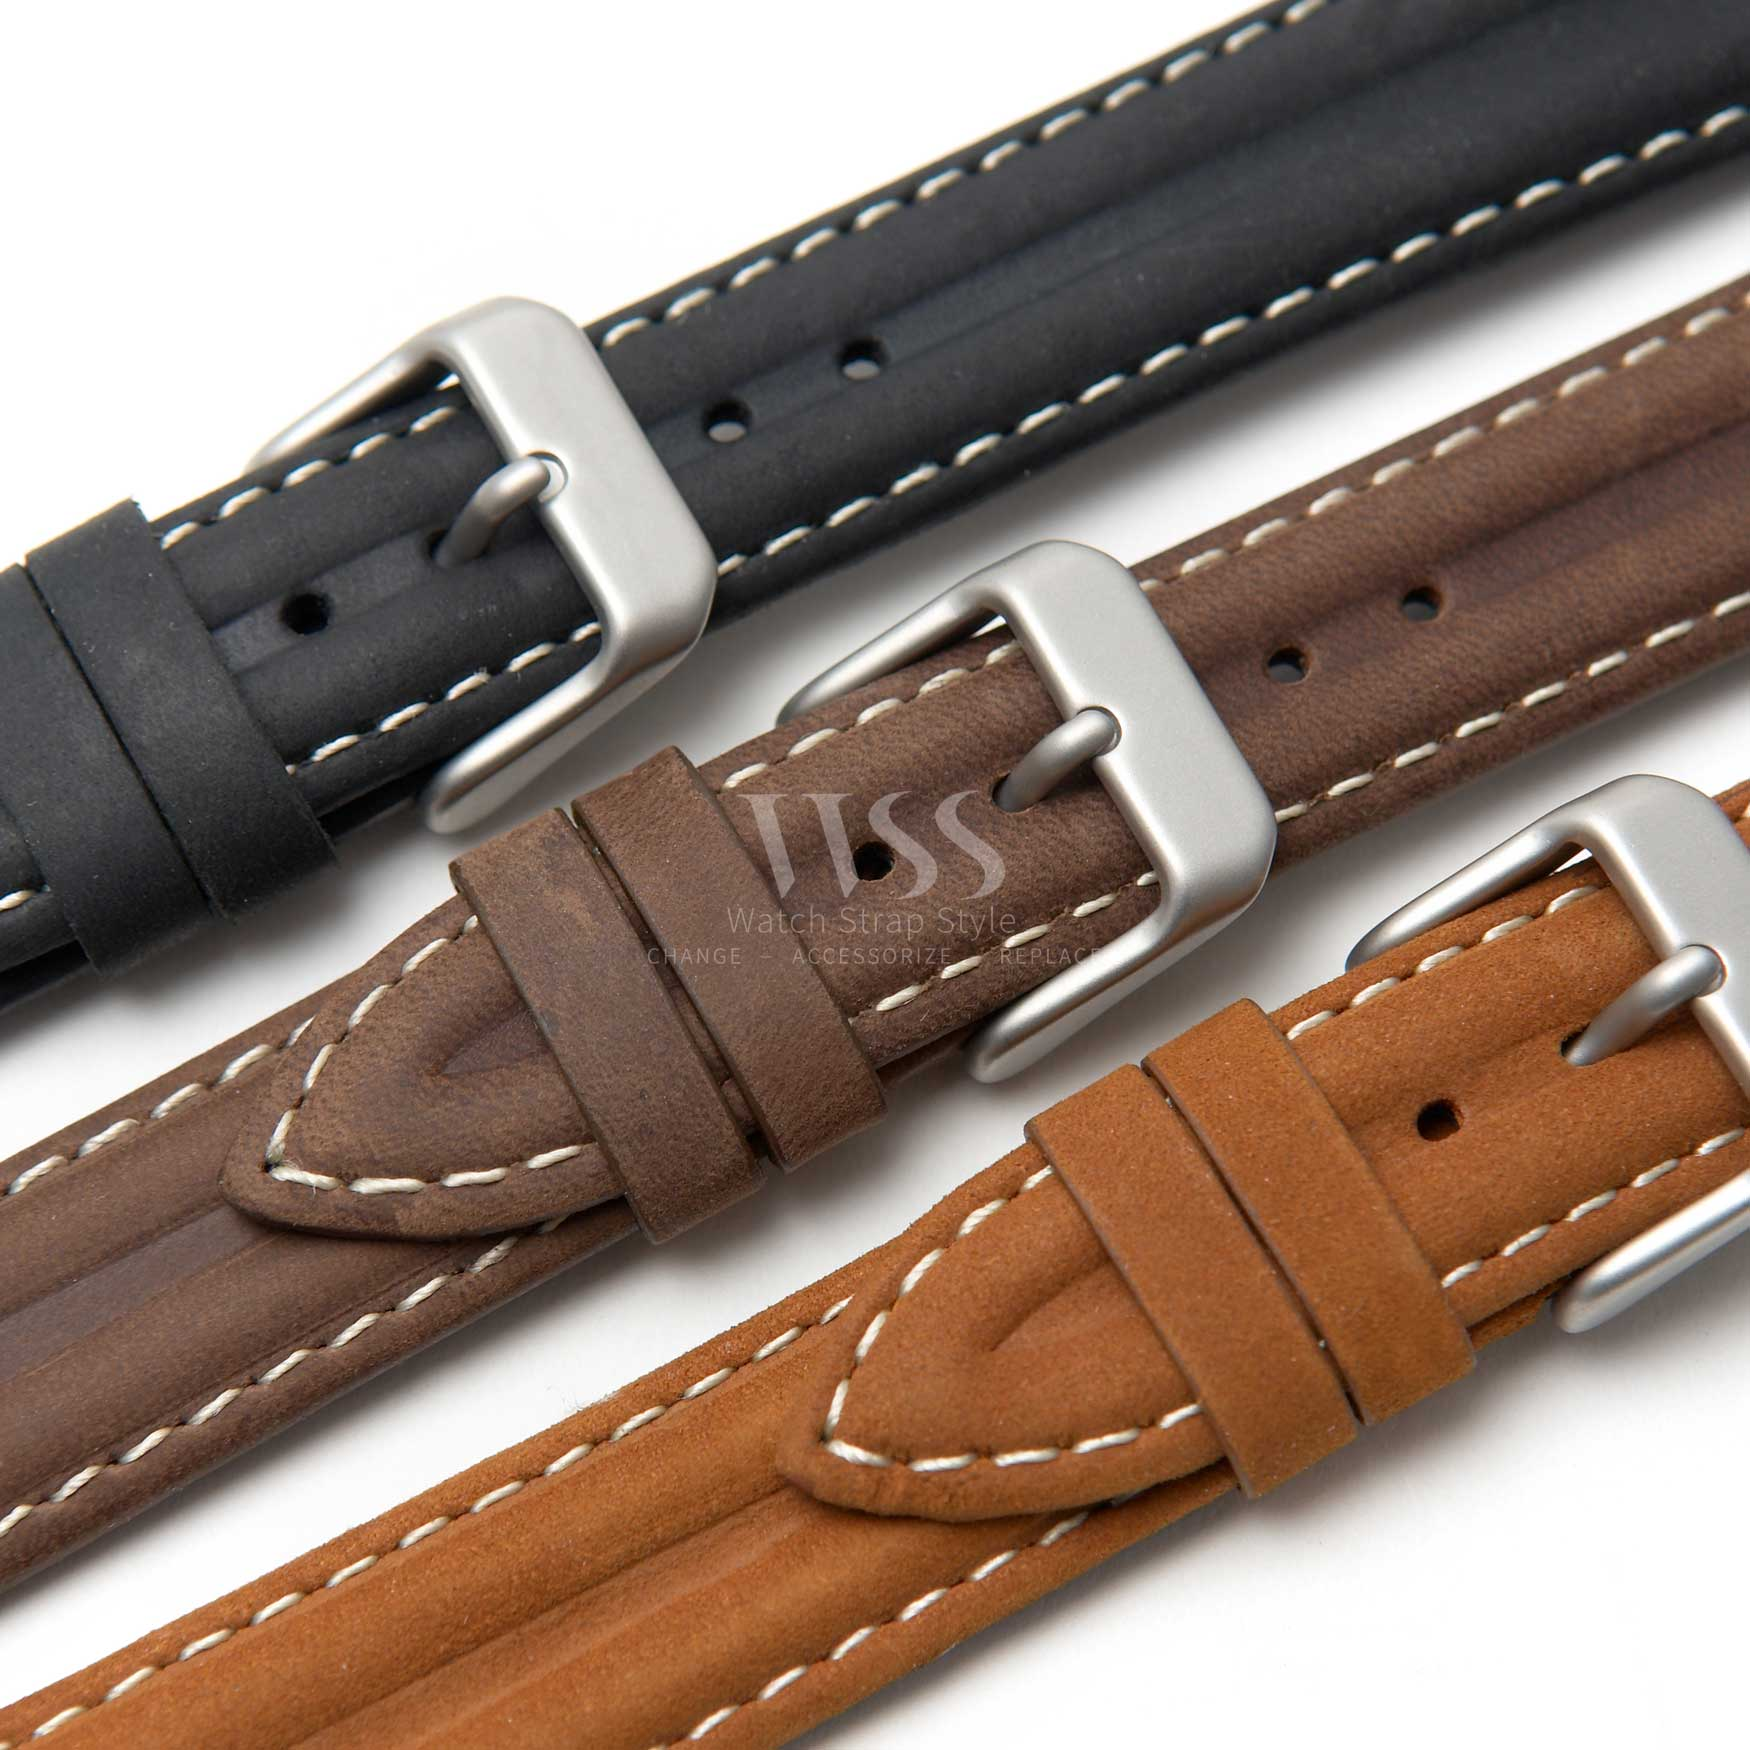 Watchstrap - Water Resistant Double Ridge Premium Leather WR913-17